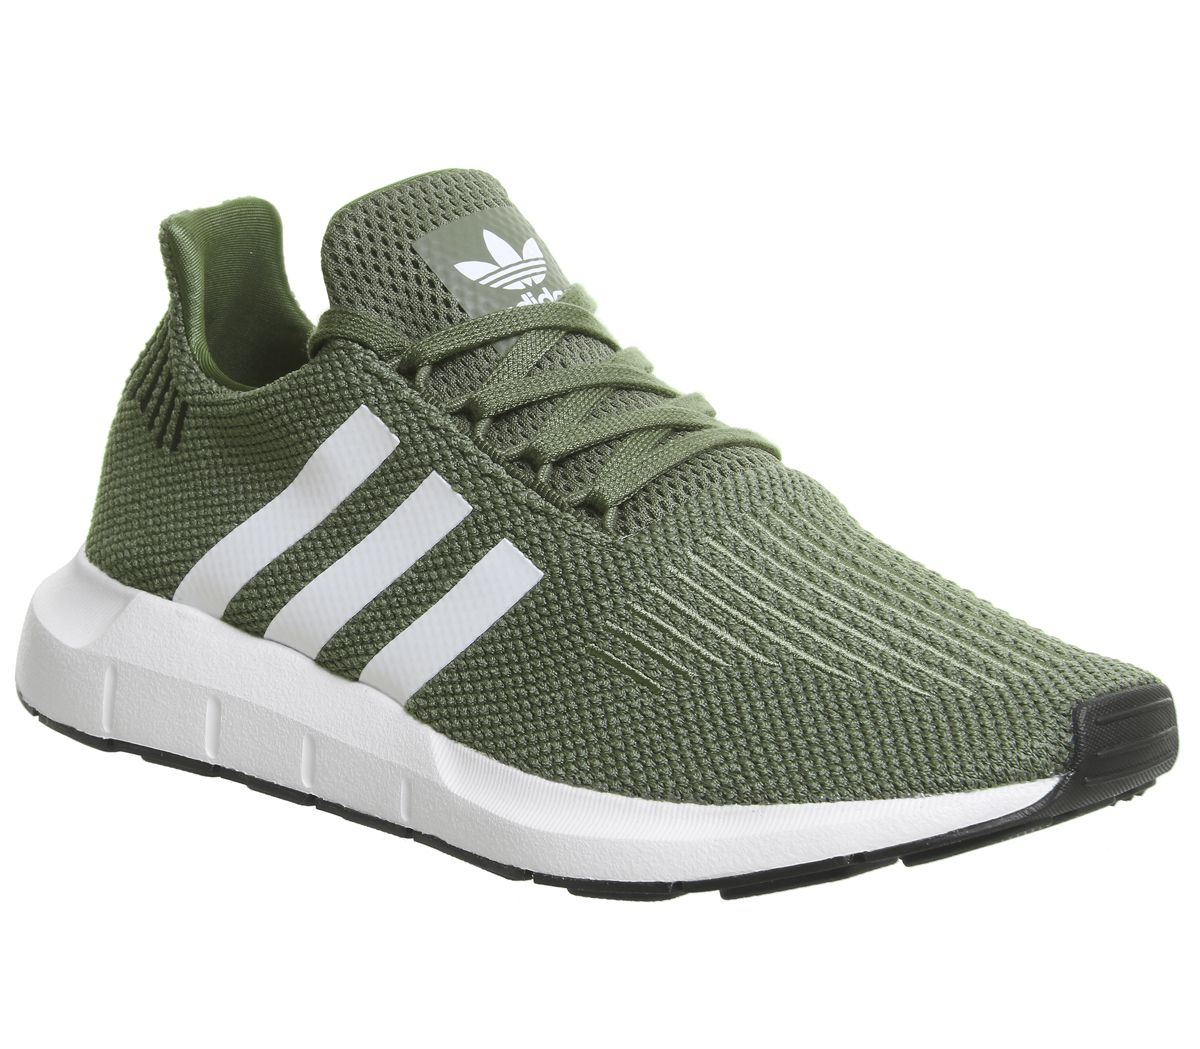 513df28ad12a3 adidas Swift Run Trainers Base Green - Hers trainers